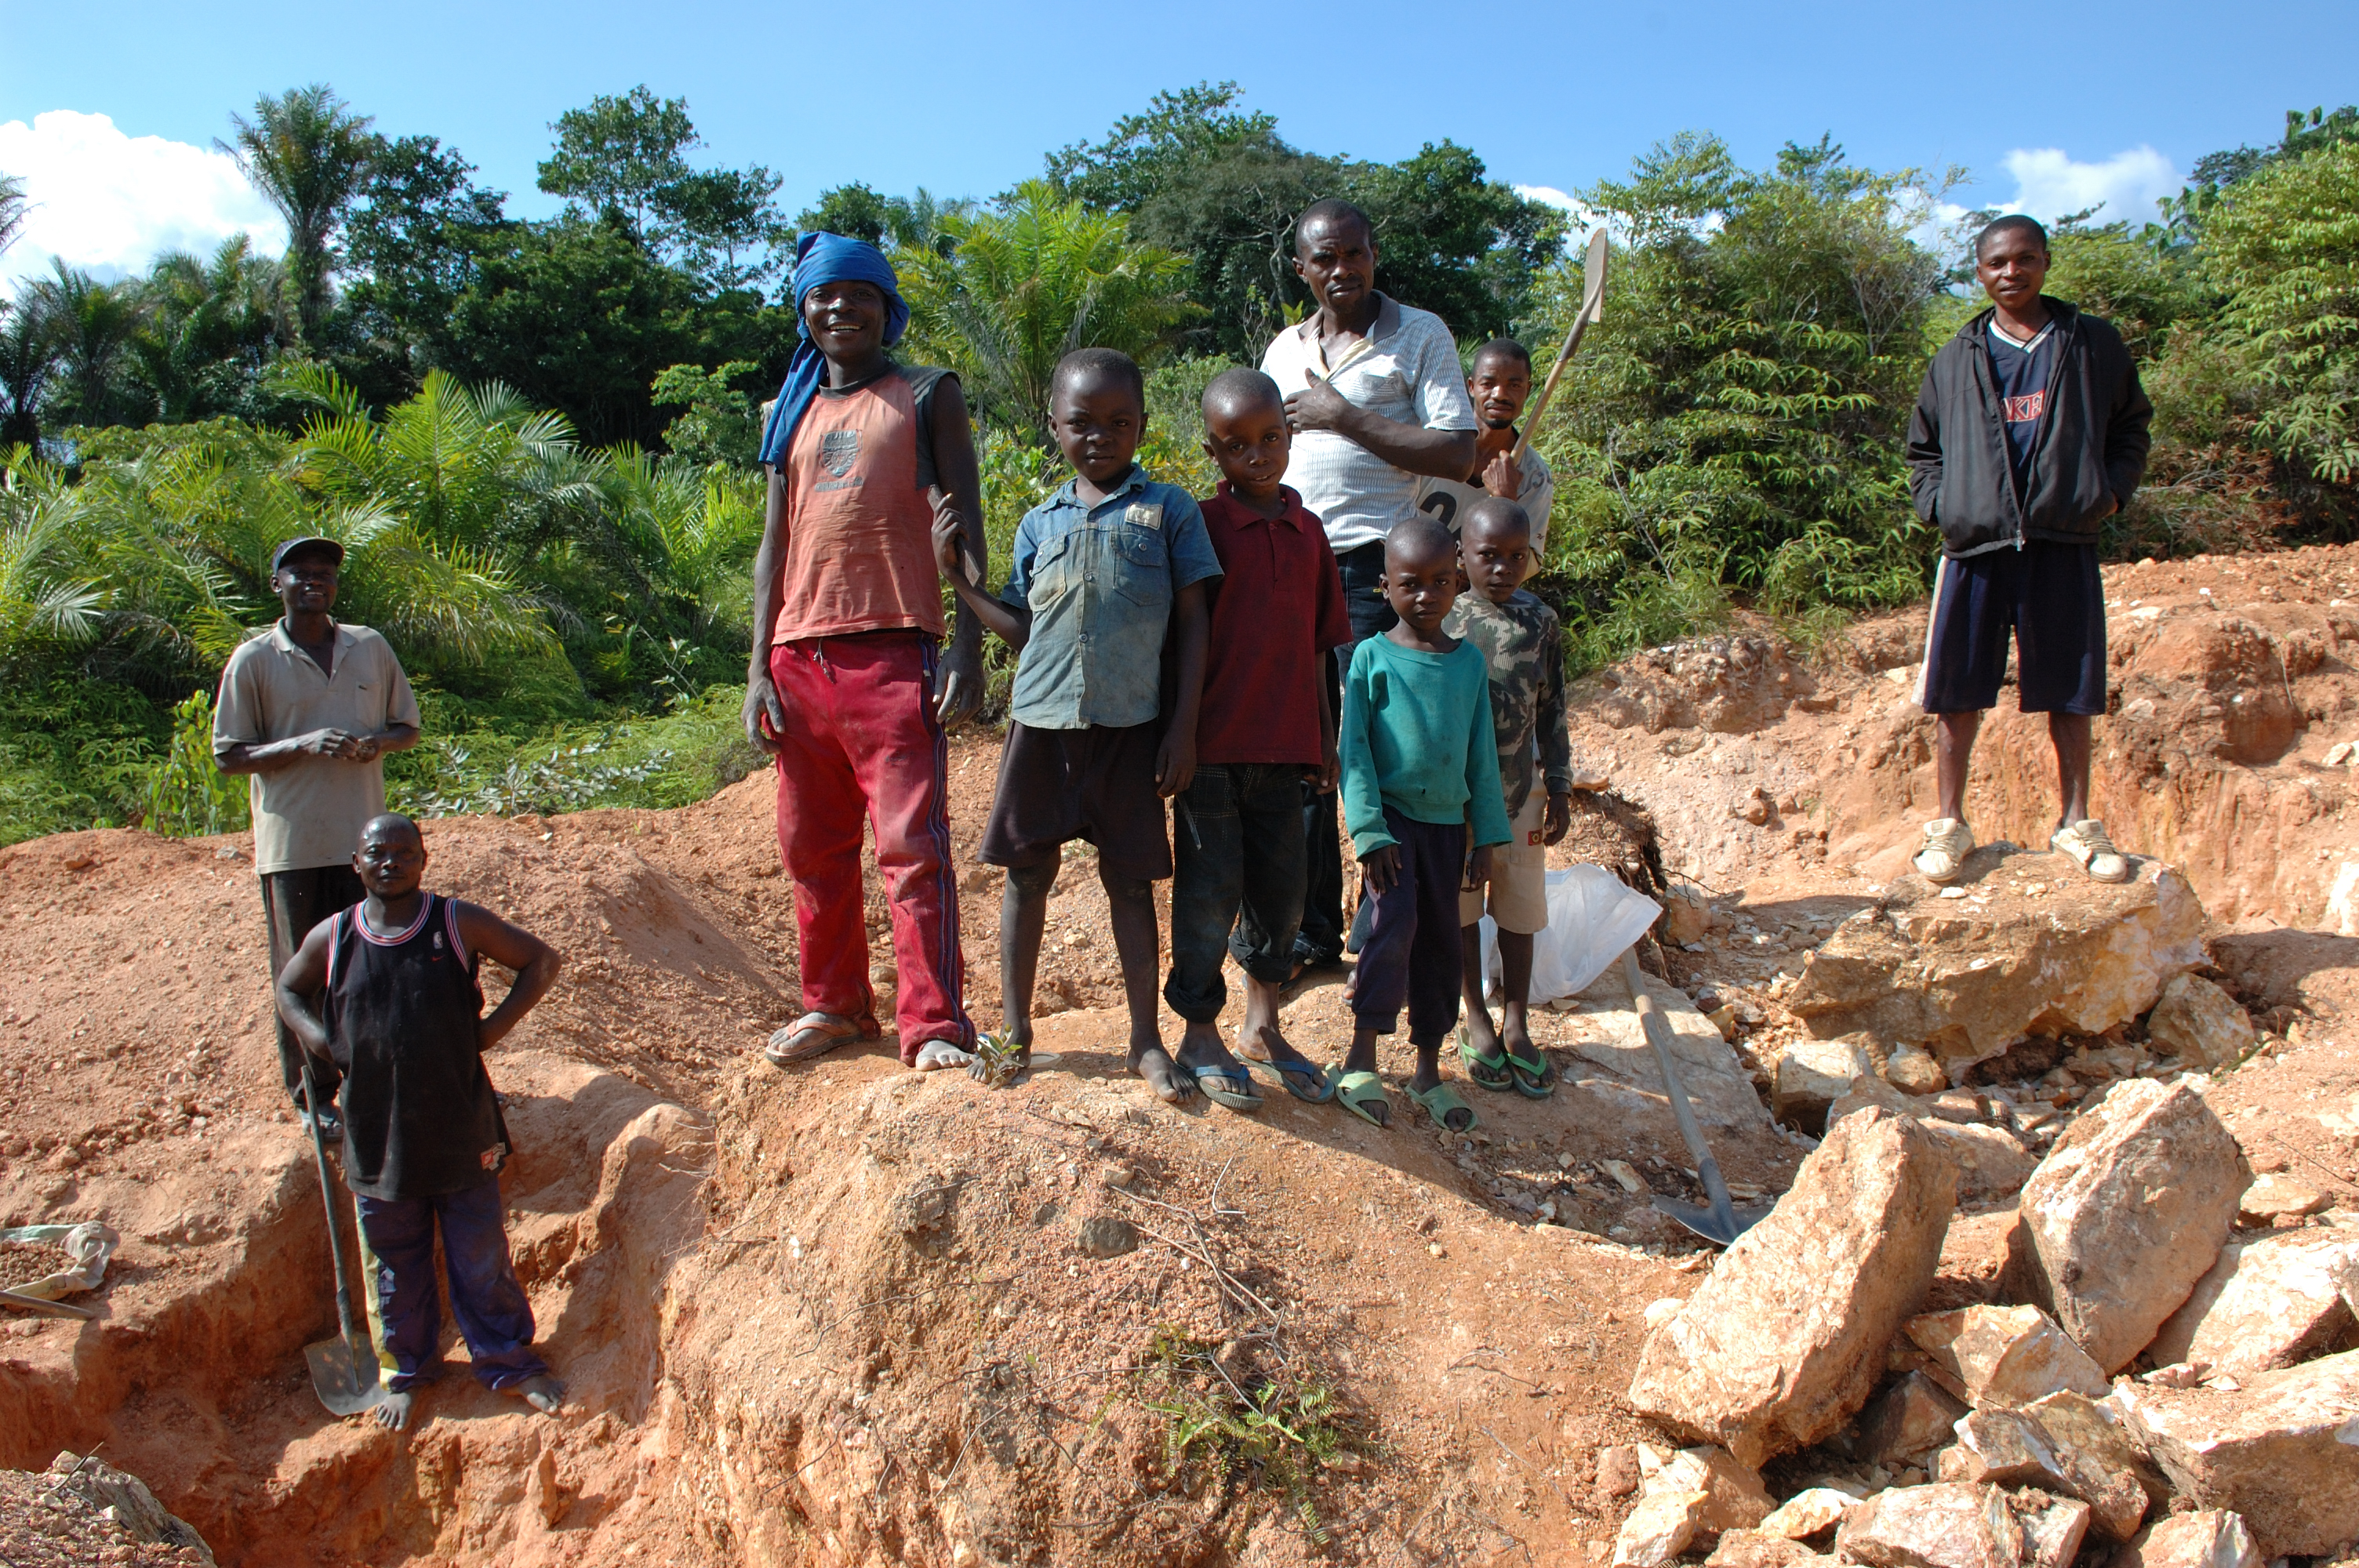 Artisanal mining, Child labour, Flickr images uploaded by Flickr upload bot, Mining in the Democratic Republic of the Congo, Tin mining, Tungsten